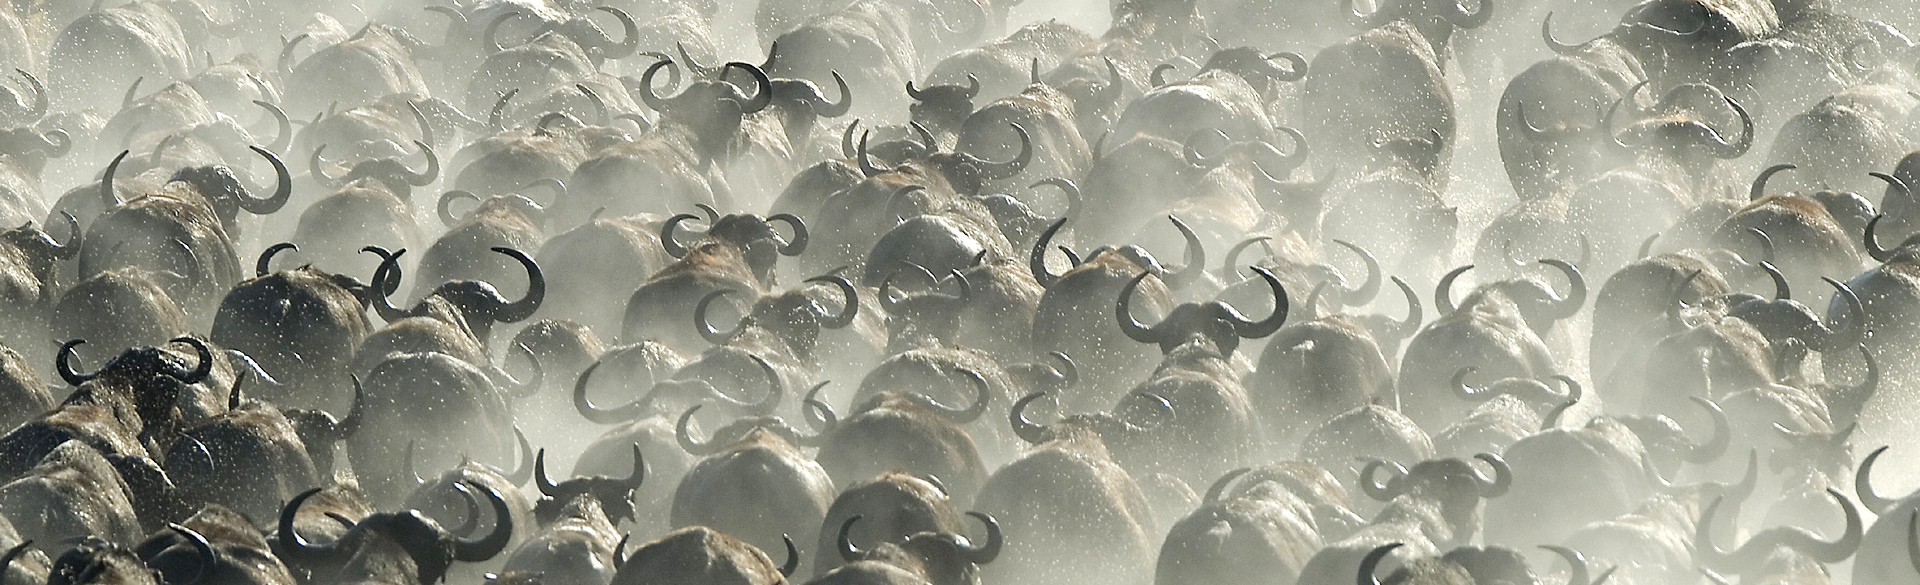 Kafue buffalo herd by Dana Allen courtesy Wilderness Safaris